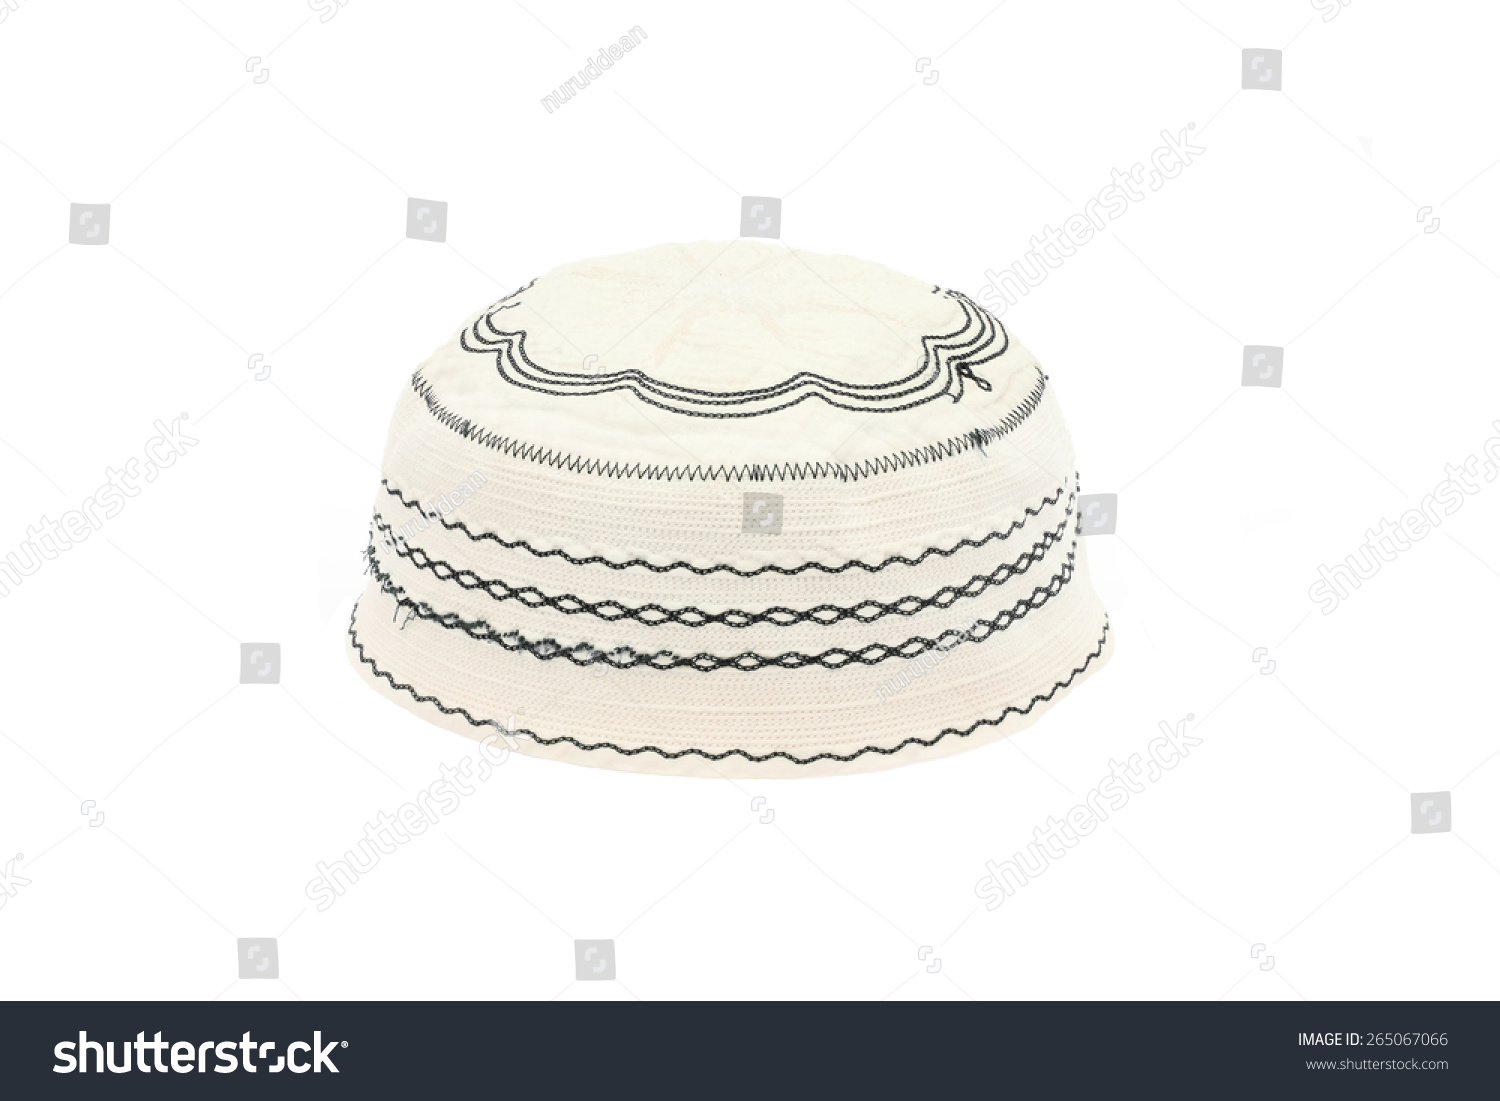 Kopiah hat muslims isolated on white stock photo 100 legal kopiah hat for muslims isolated on white background ccuart Image collections